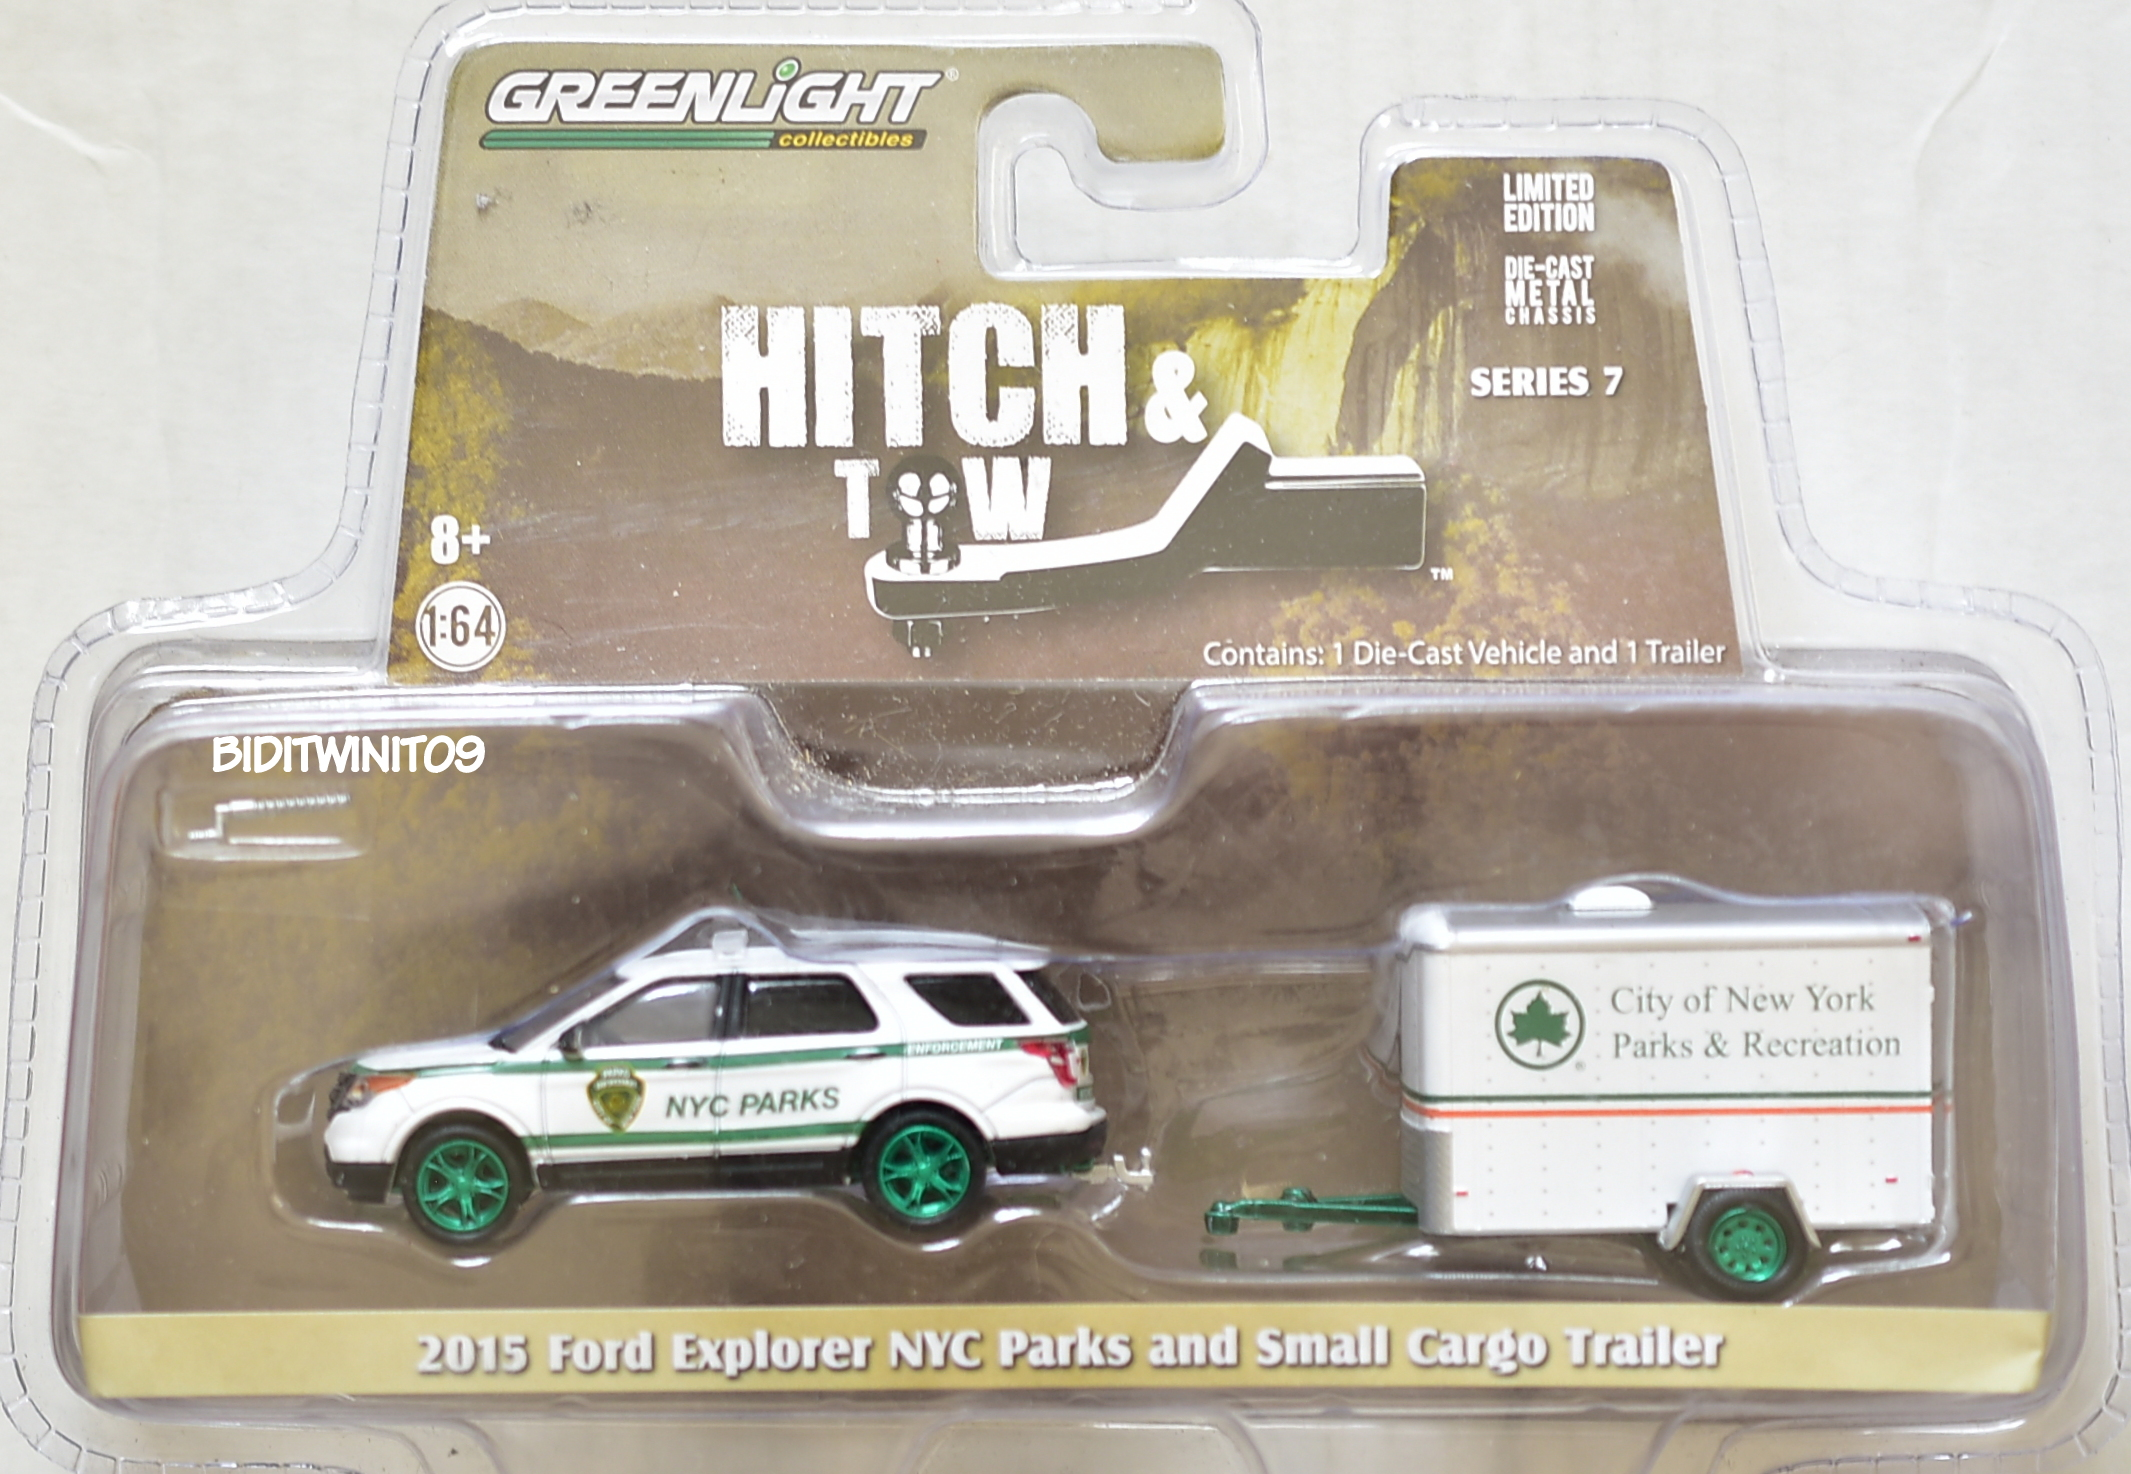 GREENLIGHT GREEN MACHINE 2015 FORD EXPLORER NYC PARKS AND SMALL CARGO TRAILER E+